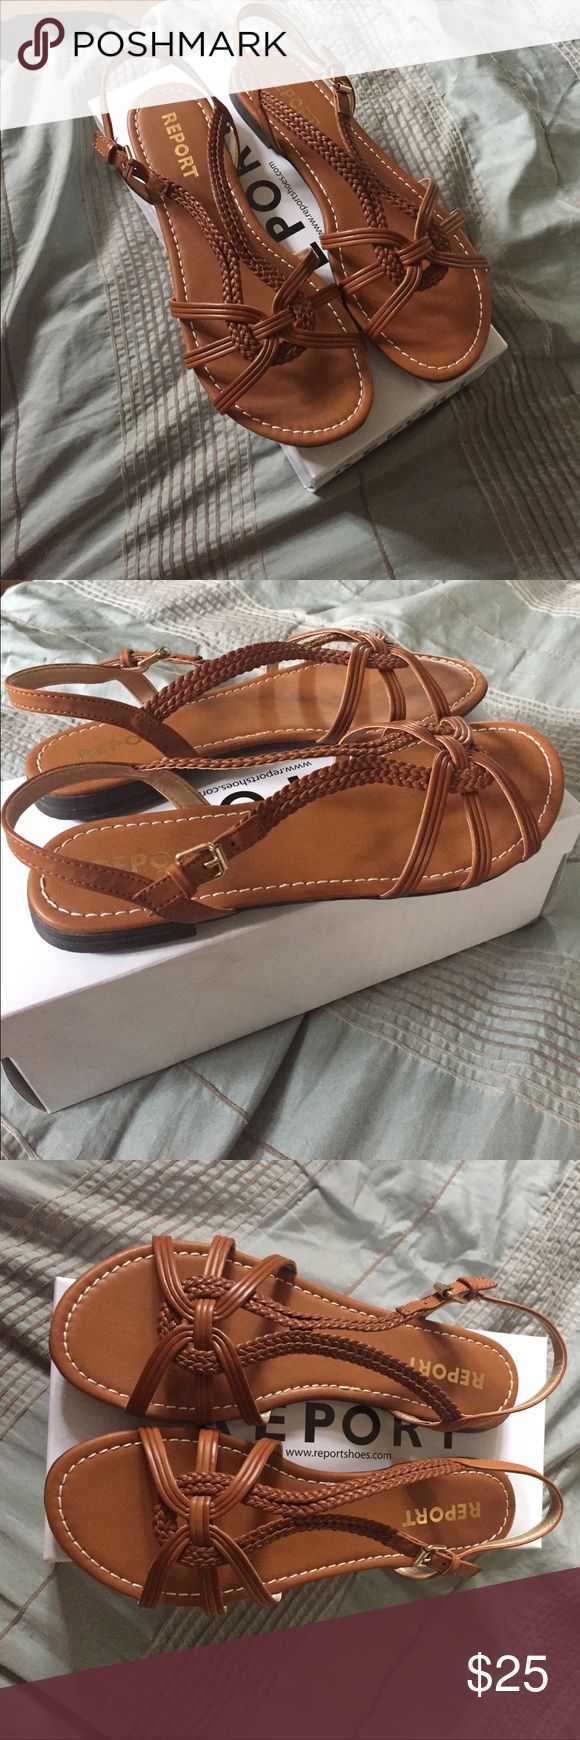 Report Tan Braided Sandal Report Braided Tan Sandal with beautiful woven details and comes in original box. Has ankle strap closure and a short .75 inch heel. Great for the beach or casual night out! Report Shoes Sandals